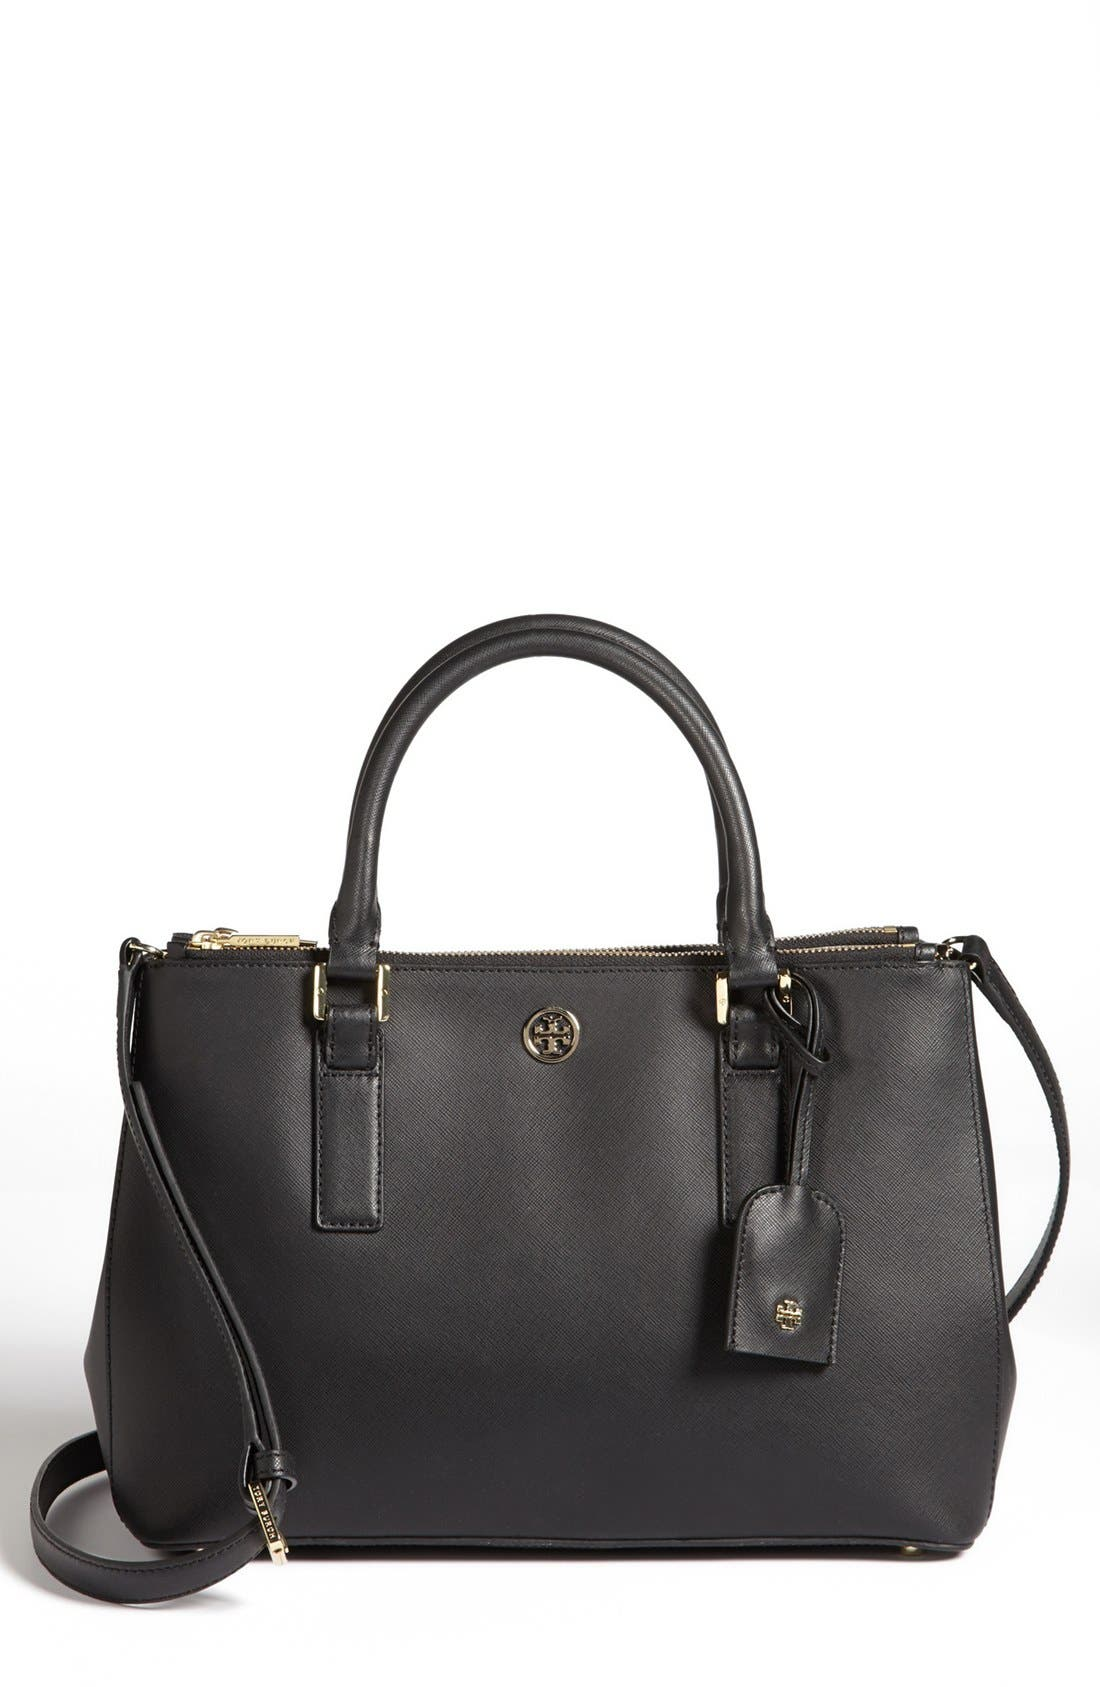 Alternate Image 1 Selected - Tory Burch 'Robinson - Mini' Double Zip Tote